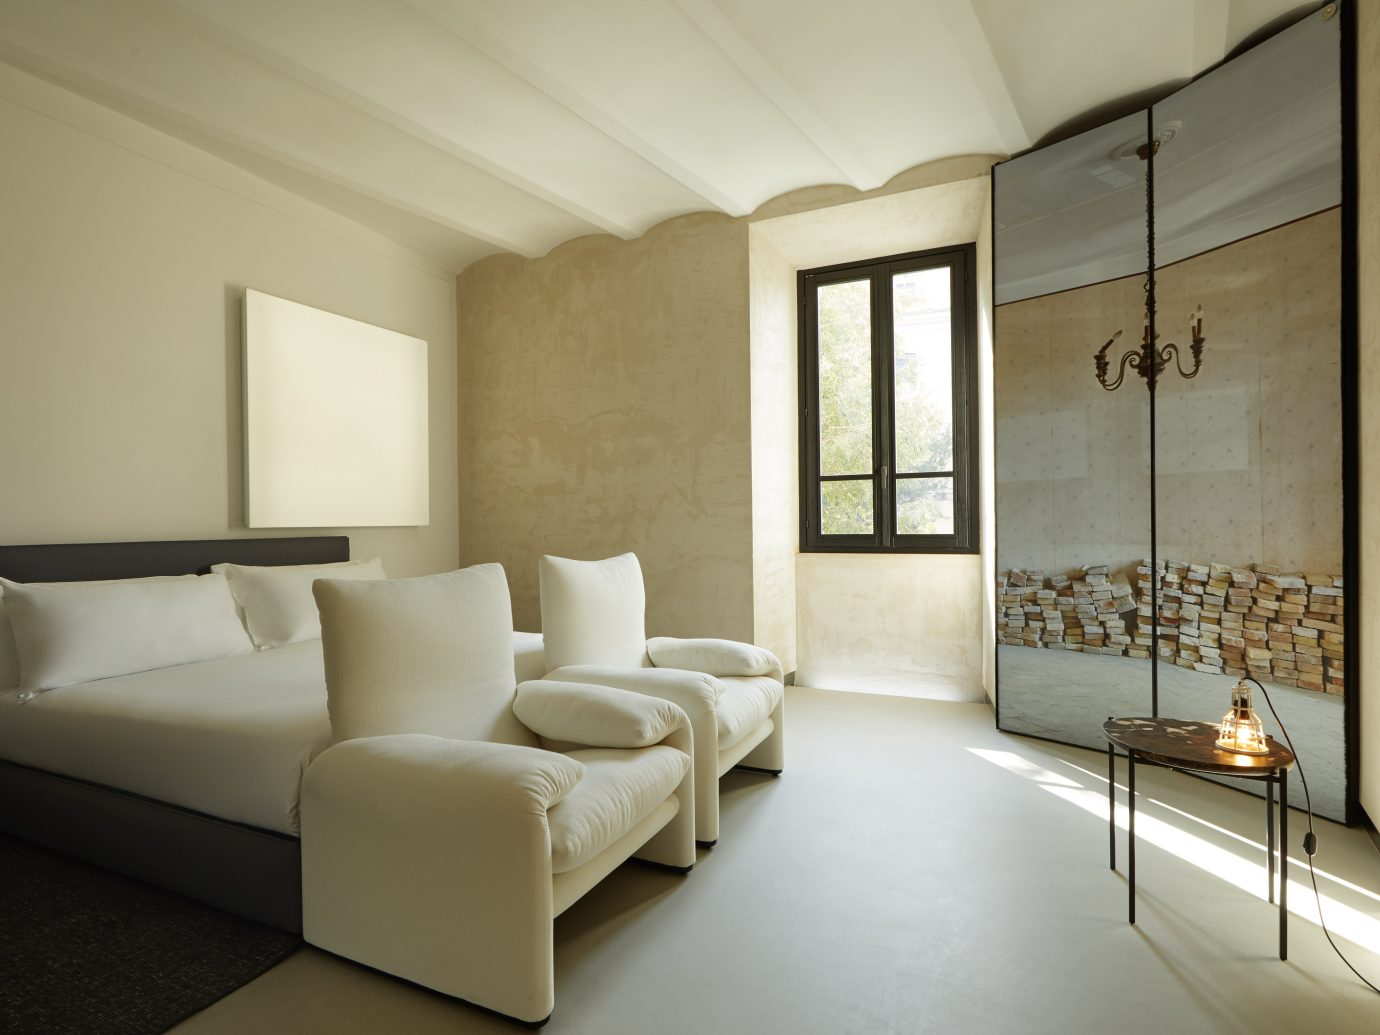 Rooms of Rome, Italy